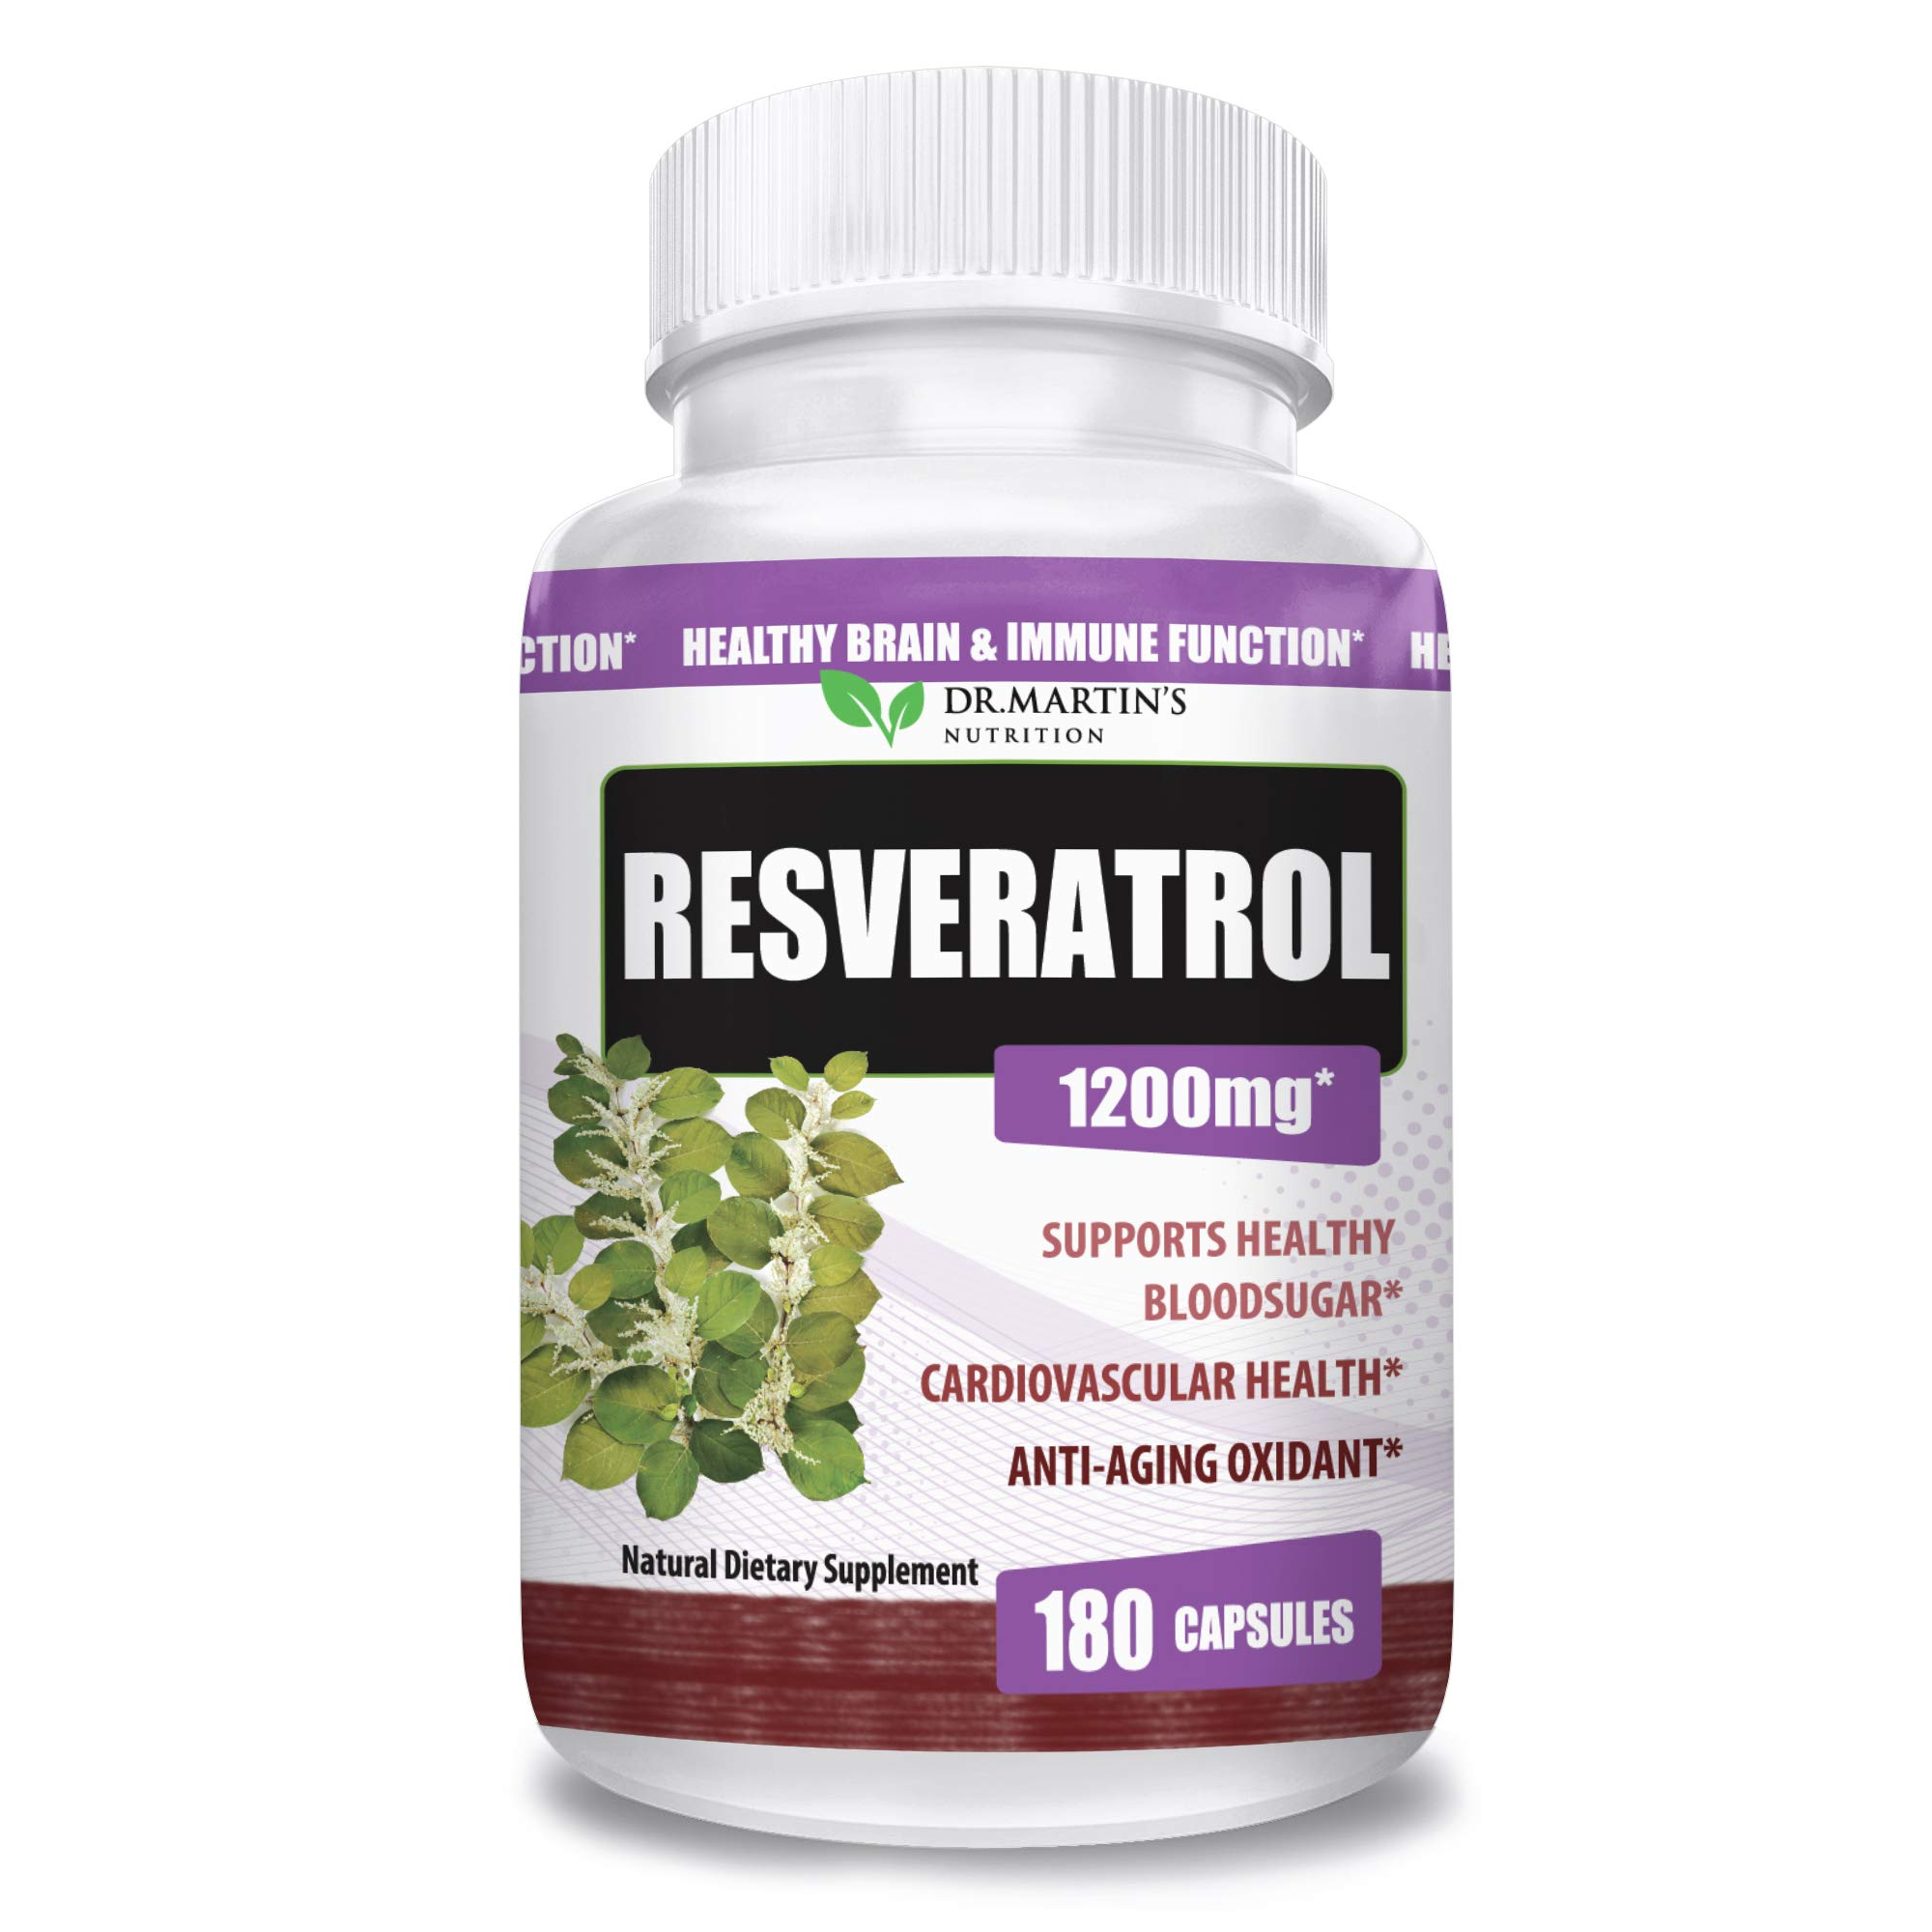 Extra Strength 100% Pure Resveratrol 1200mg - 180 Capsules - 3 Months Supply | Antioxidant Supplement | Natural Trans-Resveratrol Pills | for Anti-Aging, Heart Health, Immune System & Brain Function by DR. MARTIN'S NUTRITION